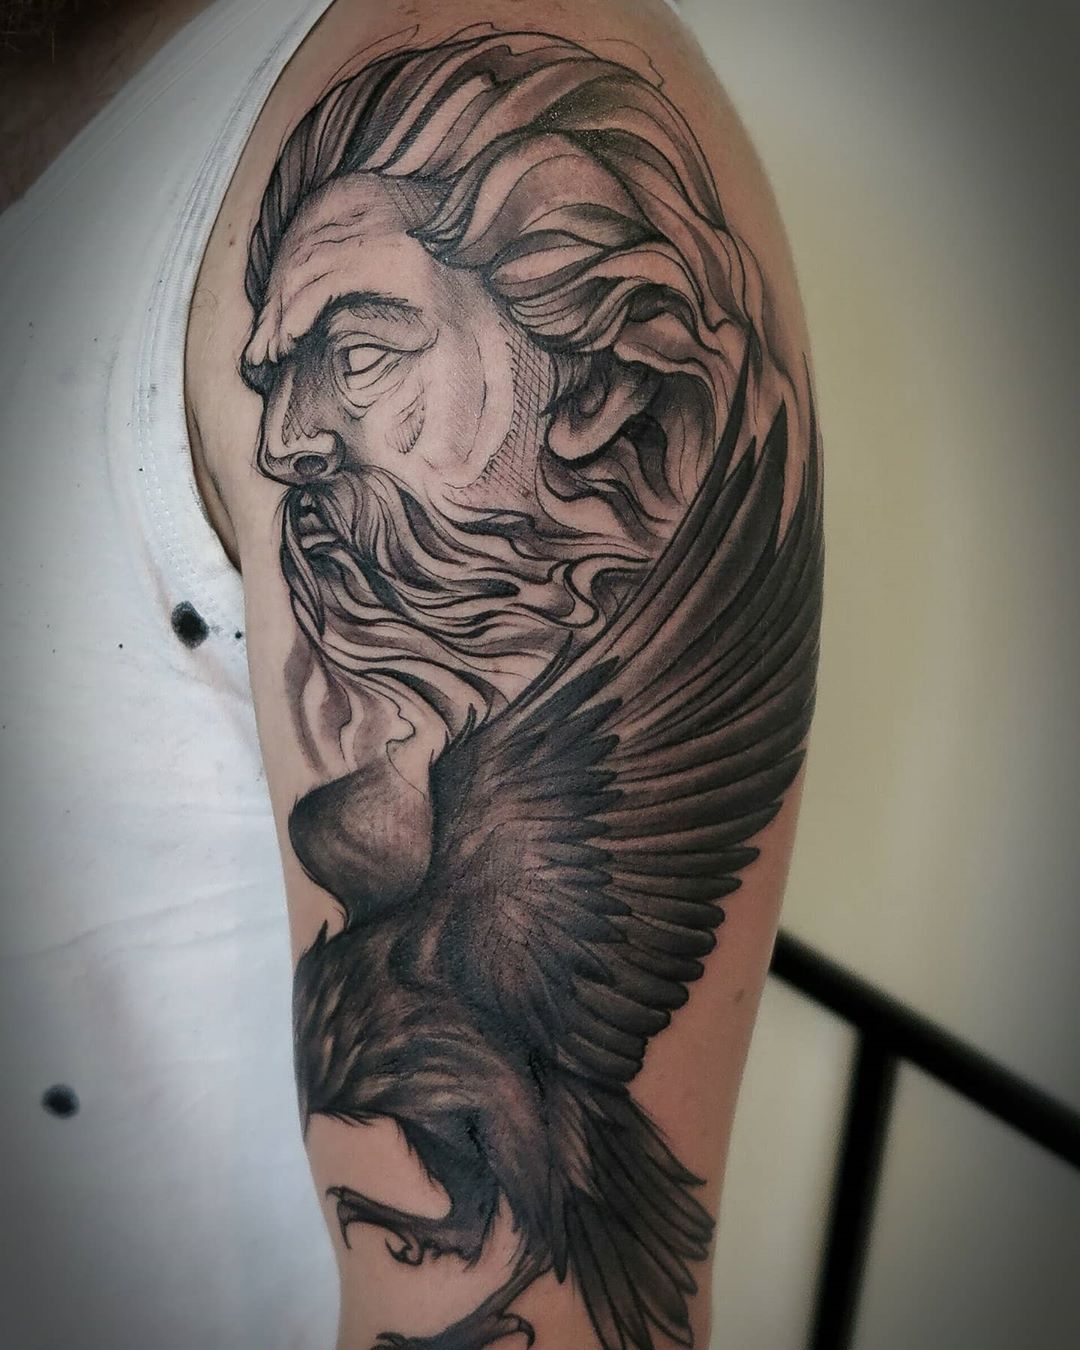 #inside_tattoo #rouen #rouentourisme #tattoos #tatouage #rouentattoo #2020 #inked #art #armtattoo #artwork #tatouagemagazine #graphicdesign #realistictattoo #blackandwhite #blacktattoo #blackandgreytattoo #zeus #zeustattoo